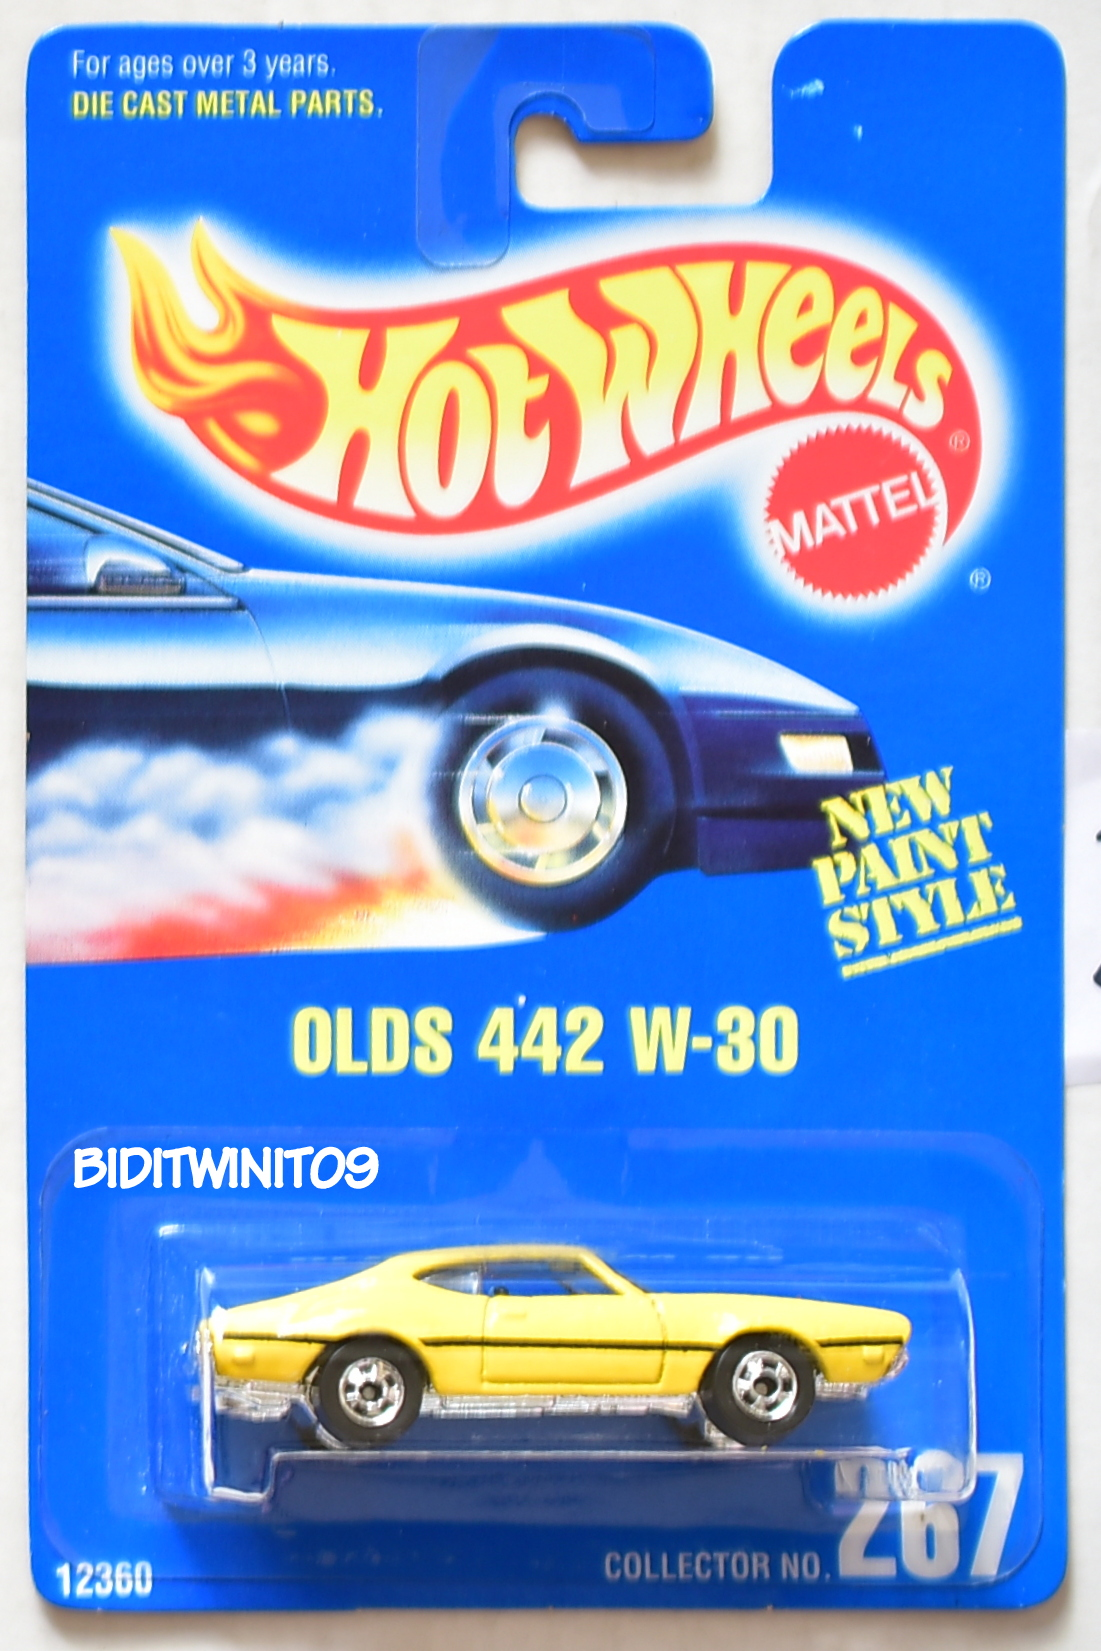 HOT WHEELS 1991 BLUE CARD OLDS 442 W-30 #267 YELLOW BASIC TIRES 21 E+